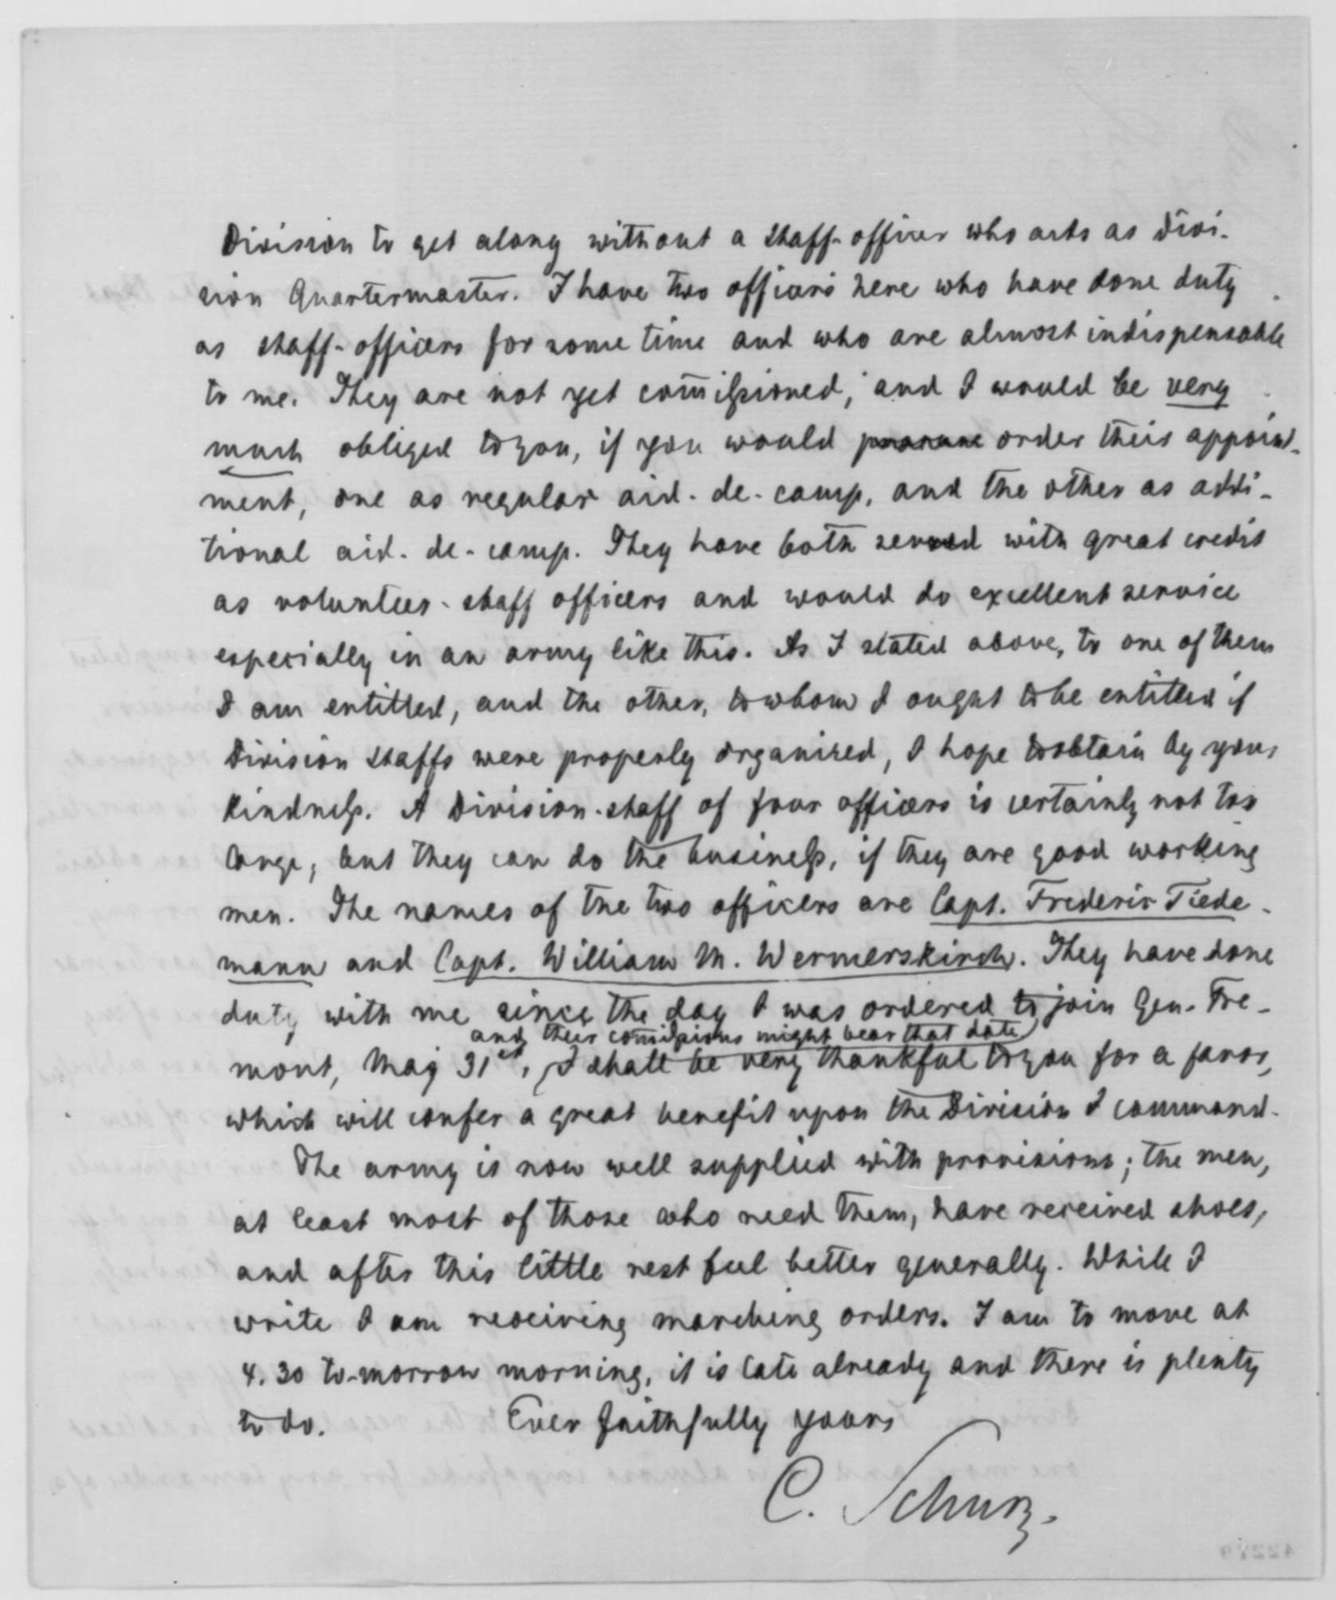 Carl Schurz to Abraham Lincoln, Wednesday, June 18, 1862  (Military affairs)